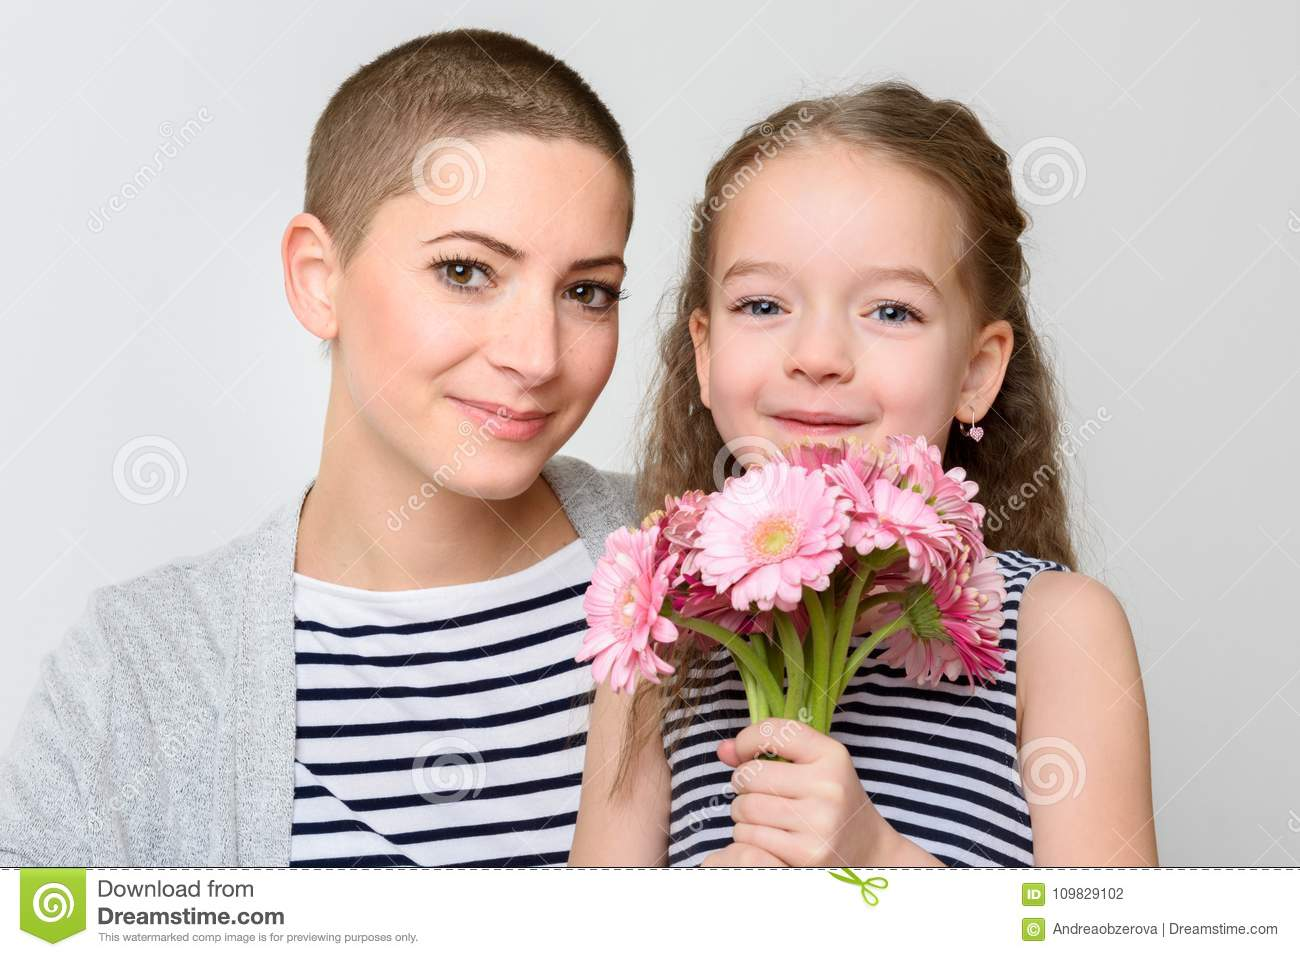 Happy Mother`s Day, Women`s day or Birthday background. Cute little girl giving mom, cancer survivor, bouquet of pink daisies.